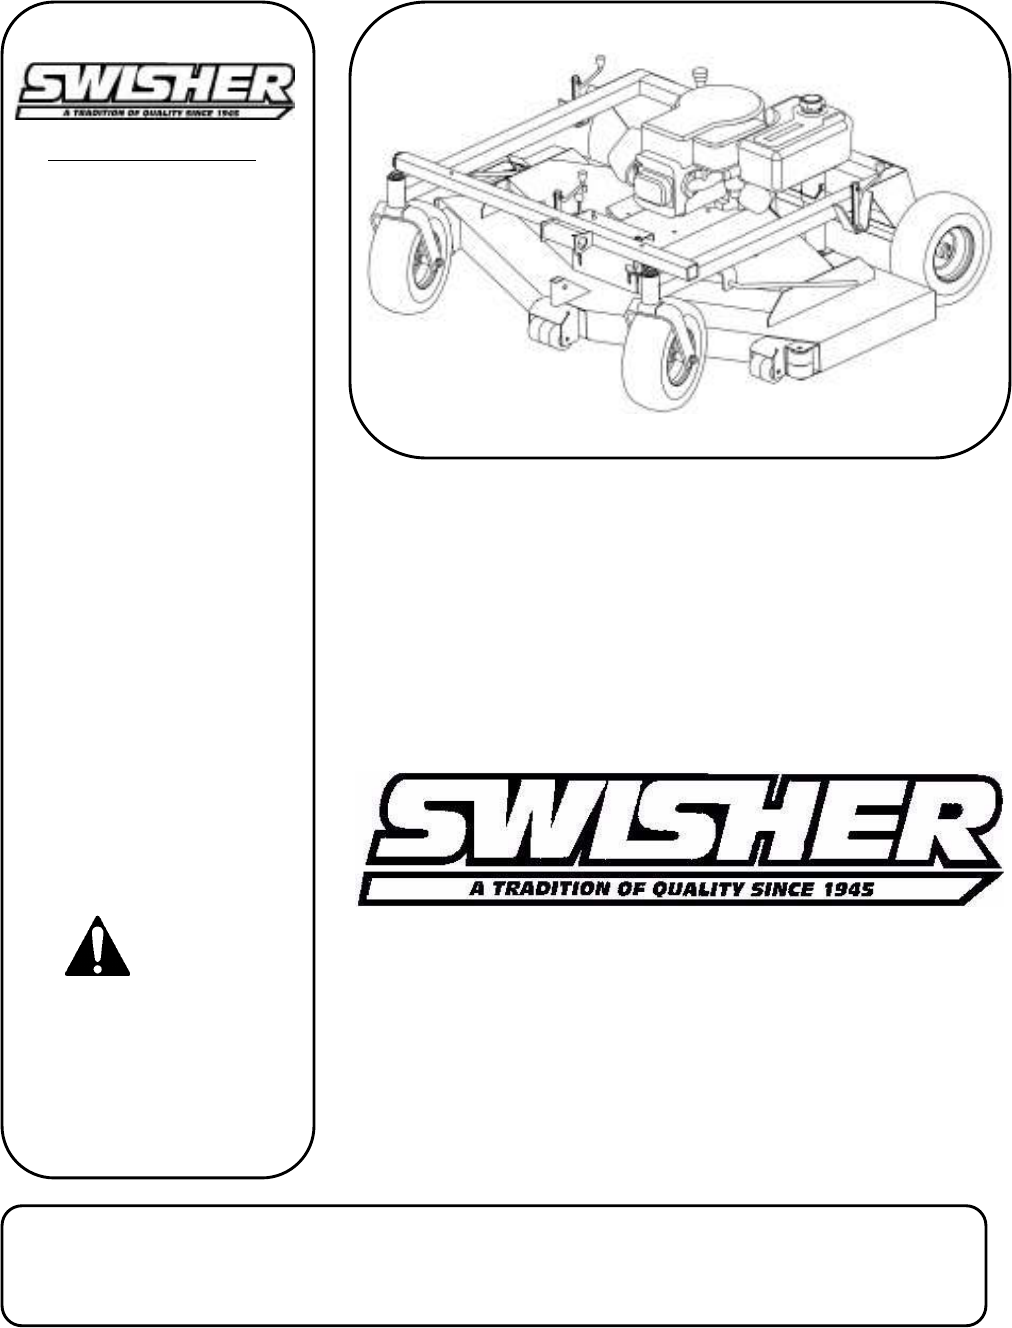 Swisher Wiring Diagram on Snatch Block Diagrams